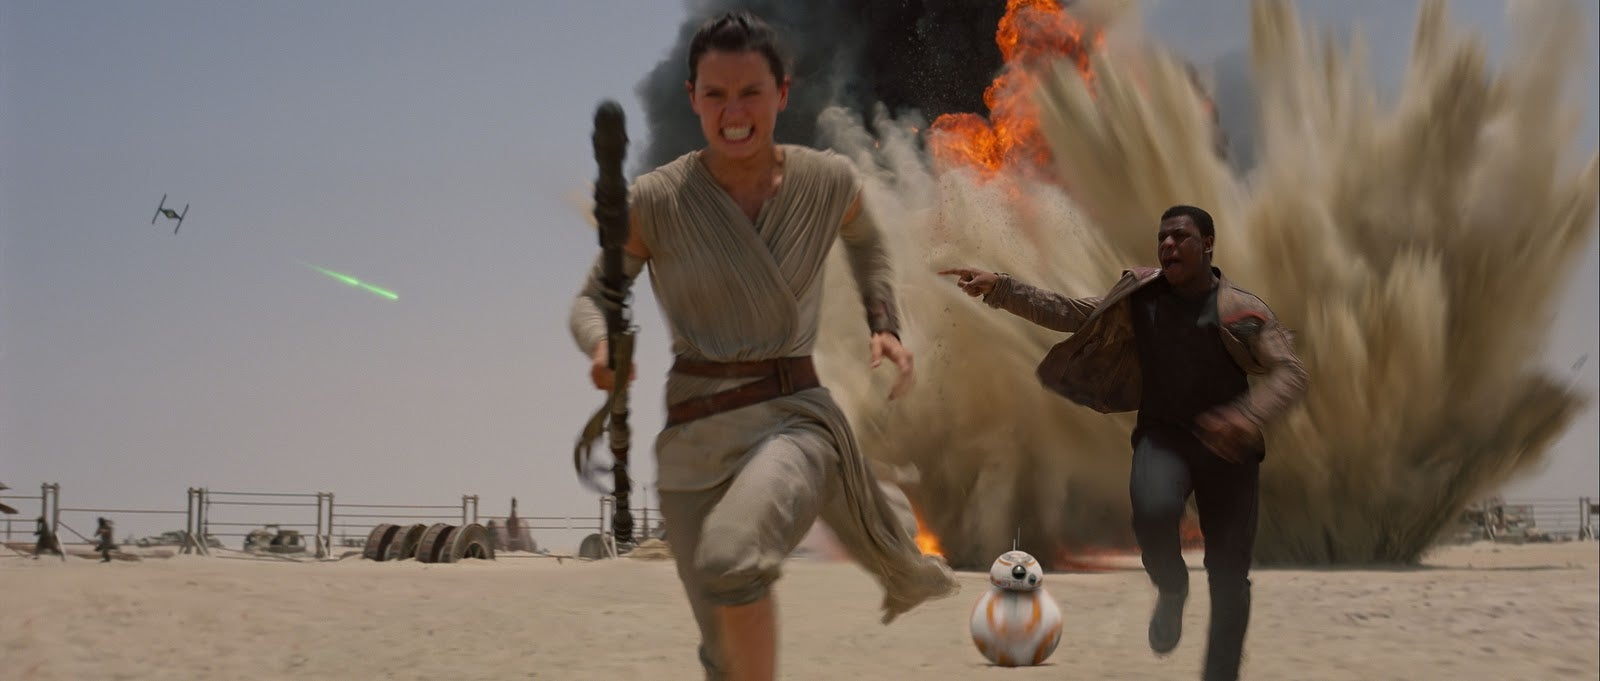 What We Thought About Star Wars: The Force Awakens